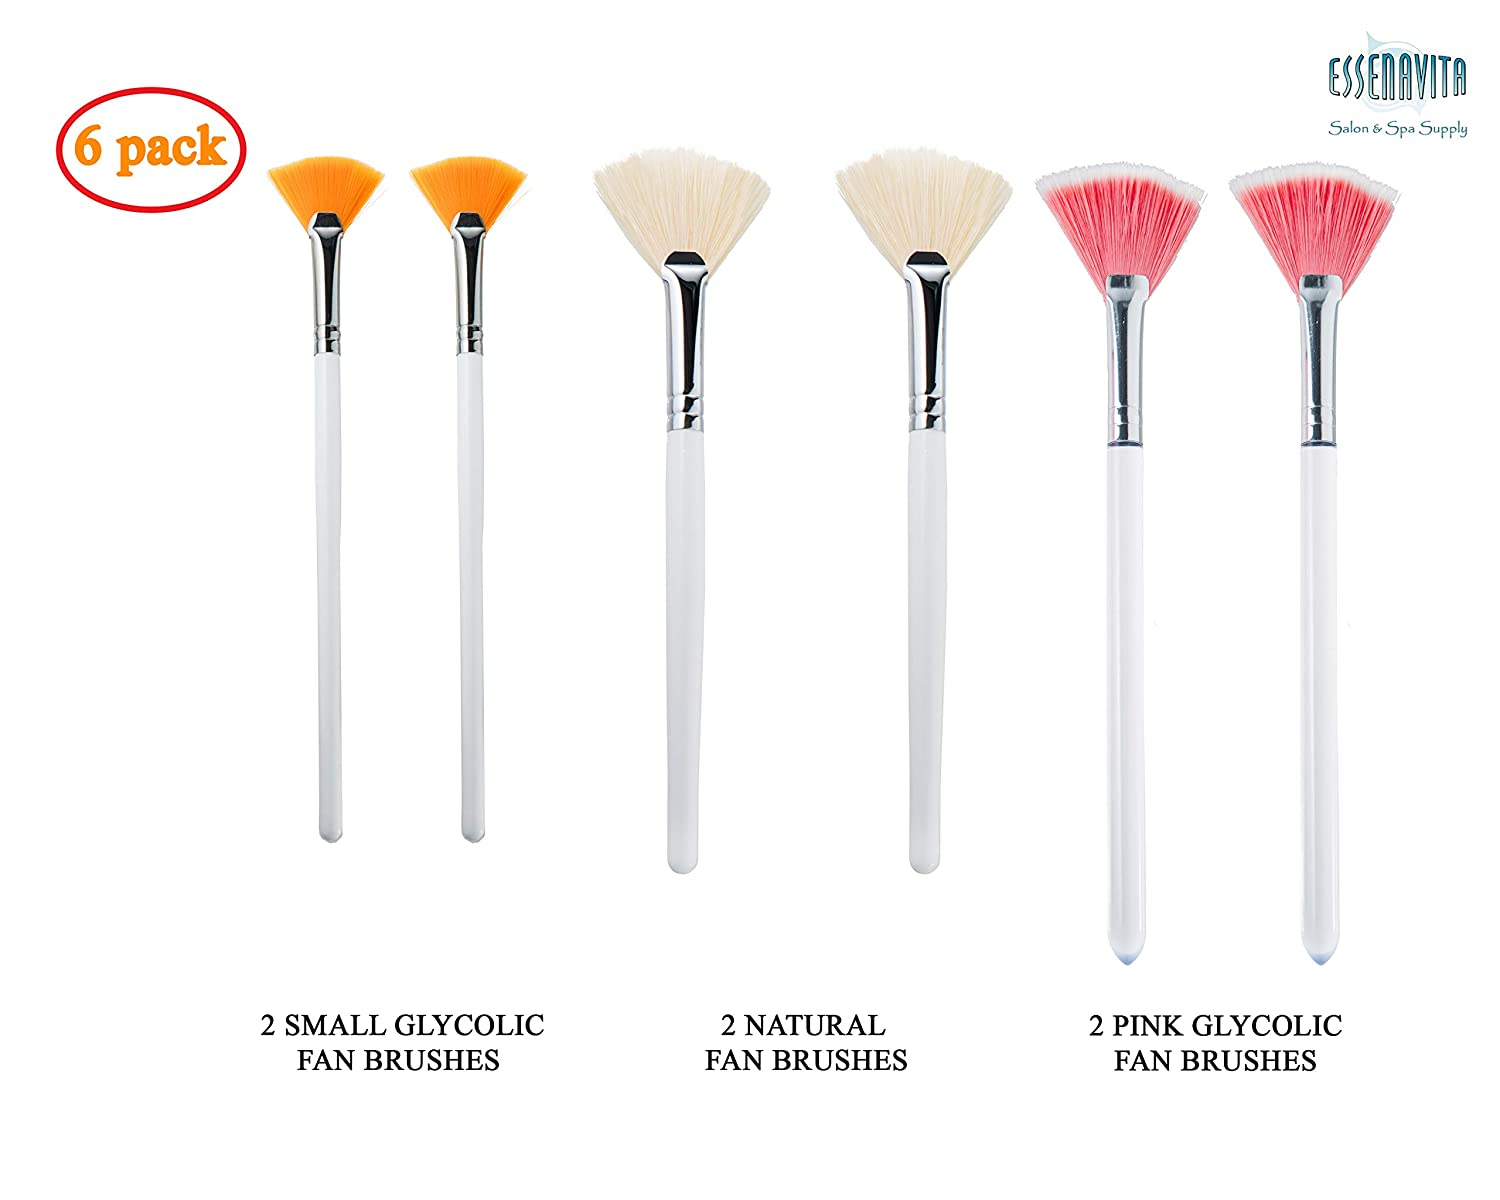 essenavita fan mask brush set of 6 pieces mask application fan brush glycolic fan brush boar head fan brush